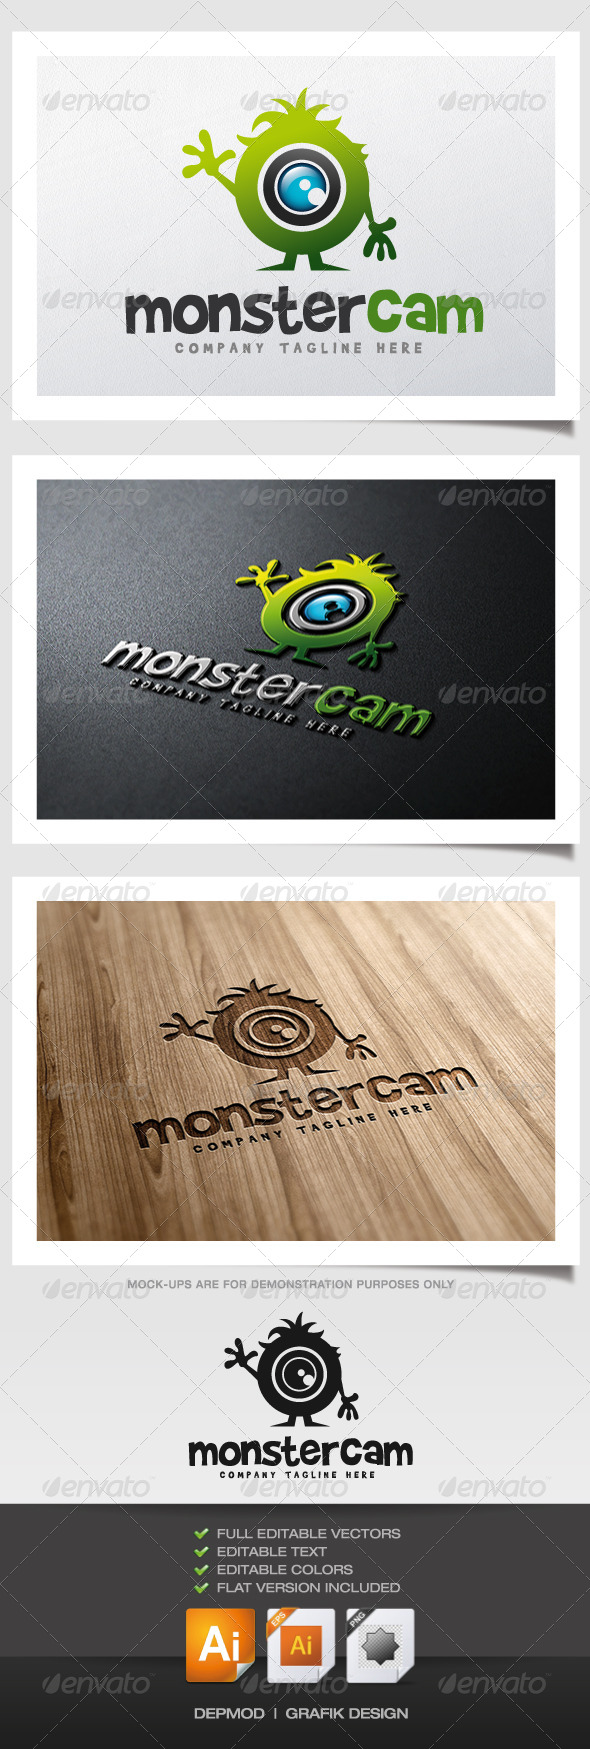 Monster Cam Logo - Objects Logo Templates